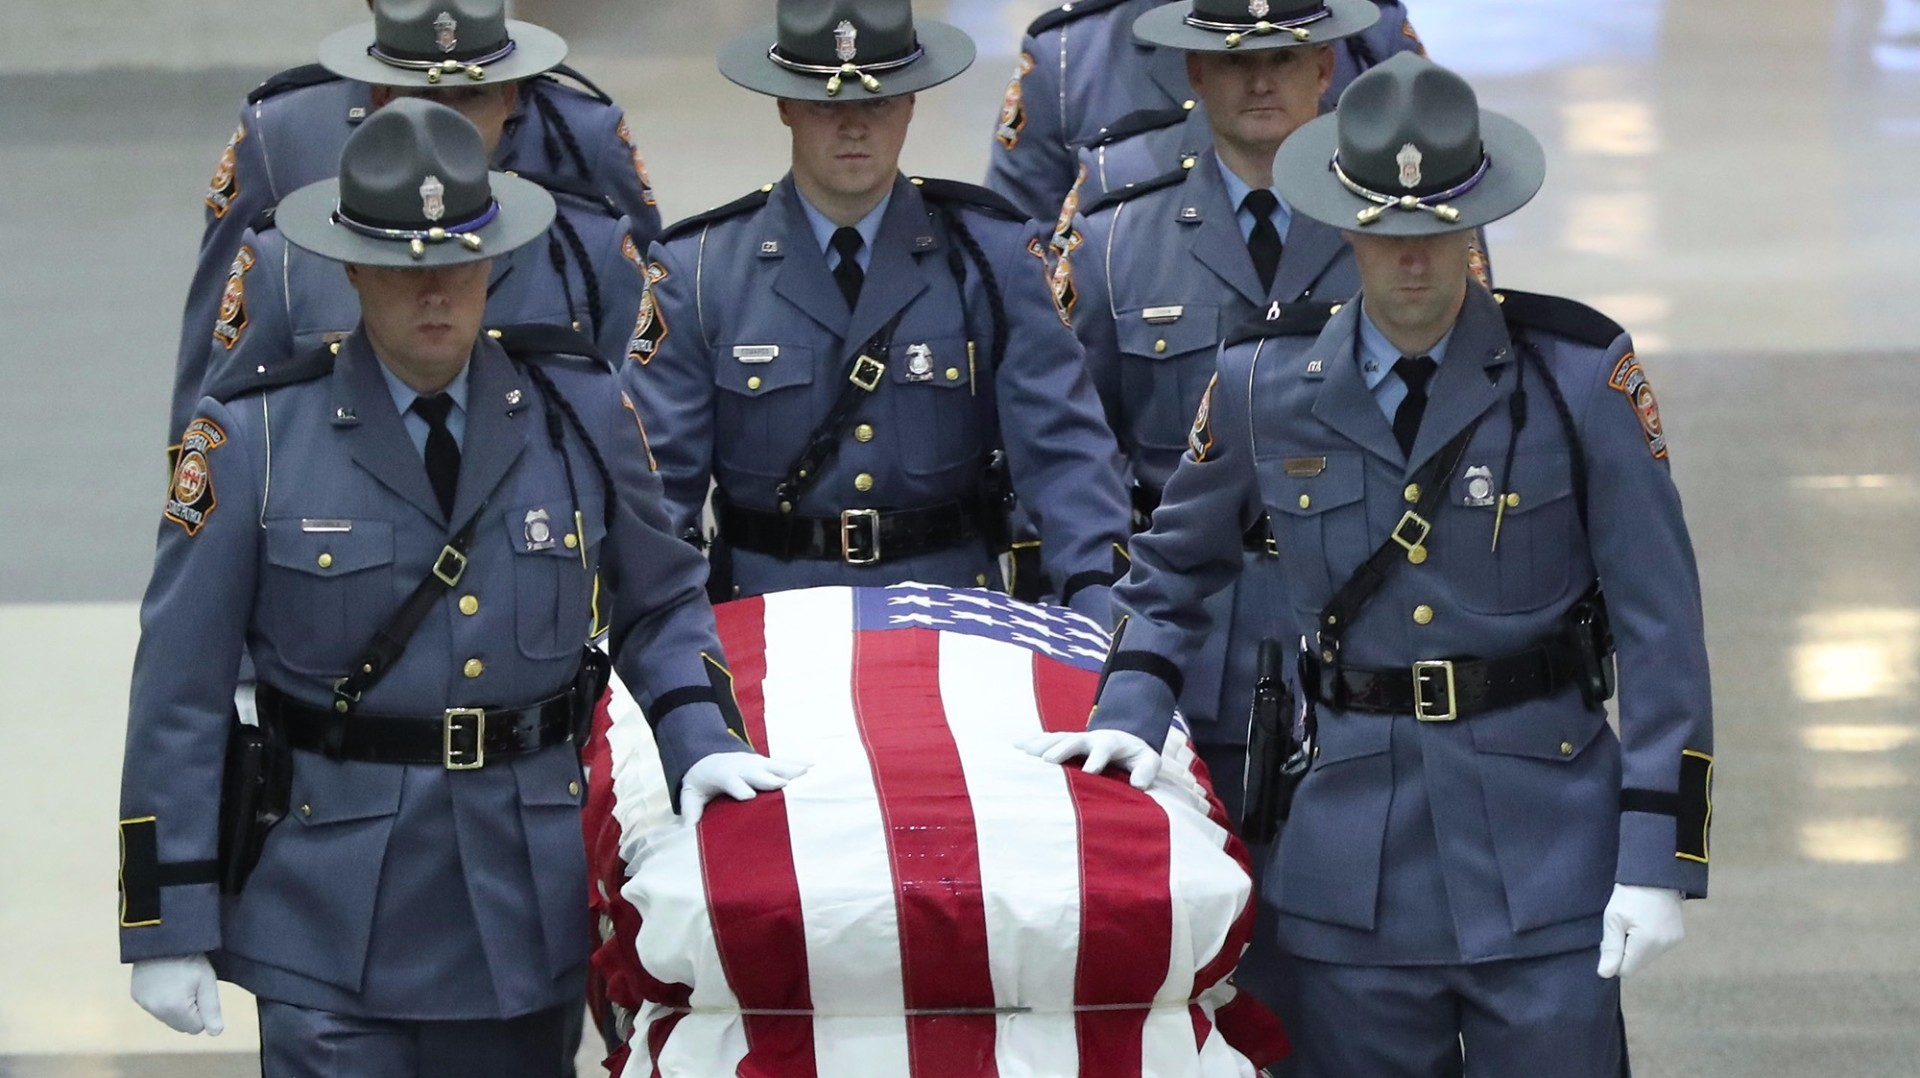 Final farewell for officer Jody Smith